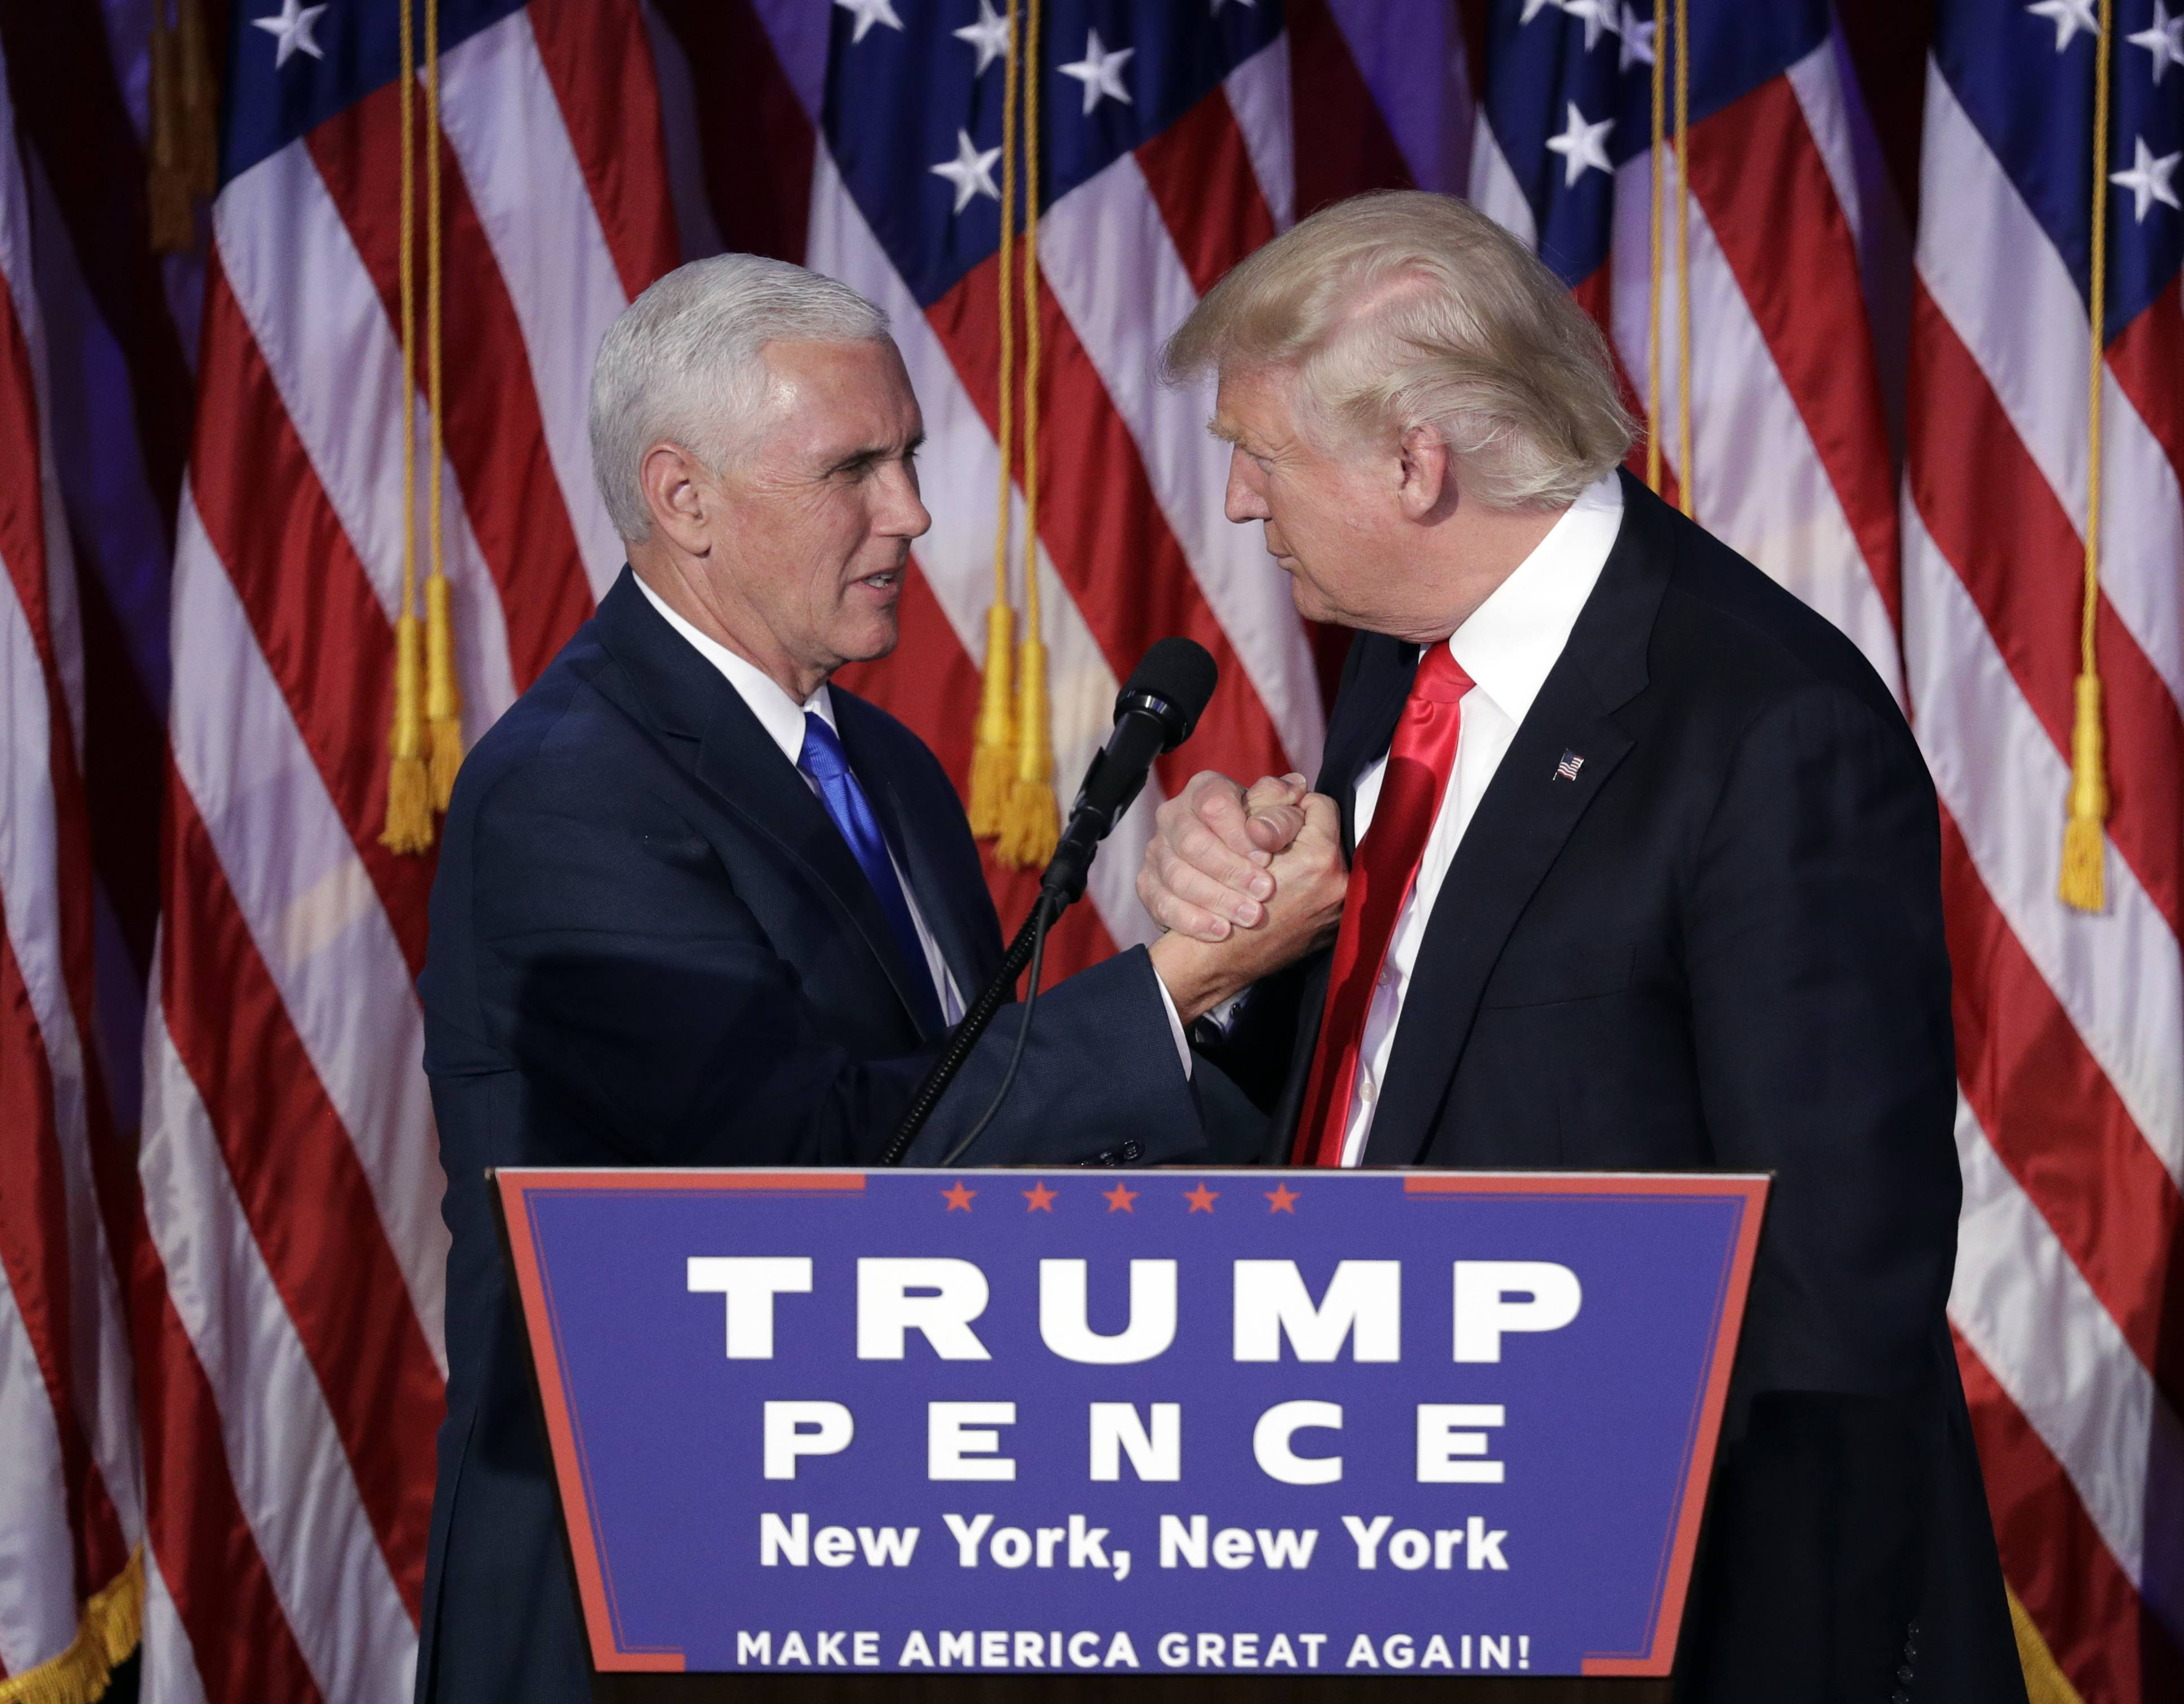 President-elect Donald Trump shakes hands with Vice President-elect Mike Pence as he gives his acceptance speech Wednesday during his Election Night rally in New York.